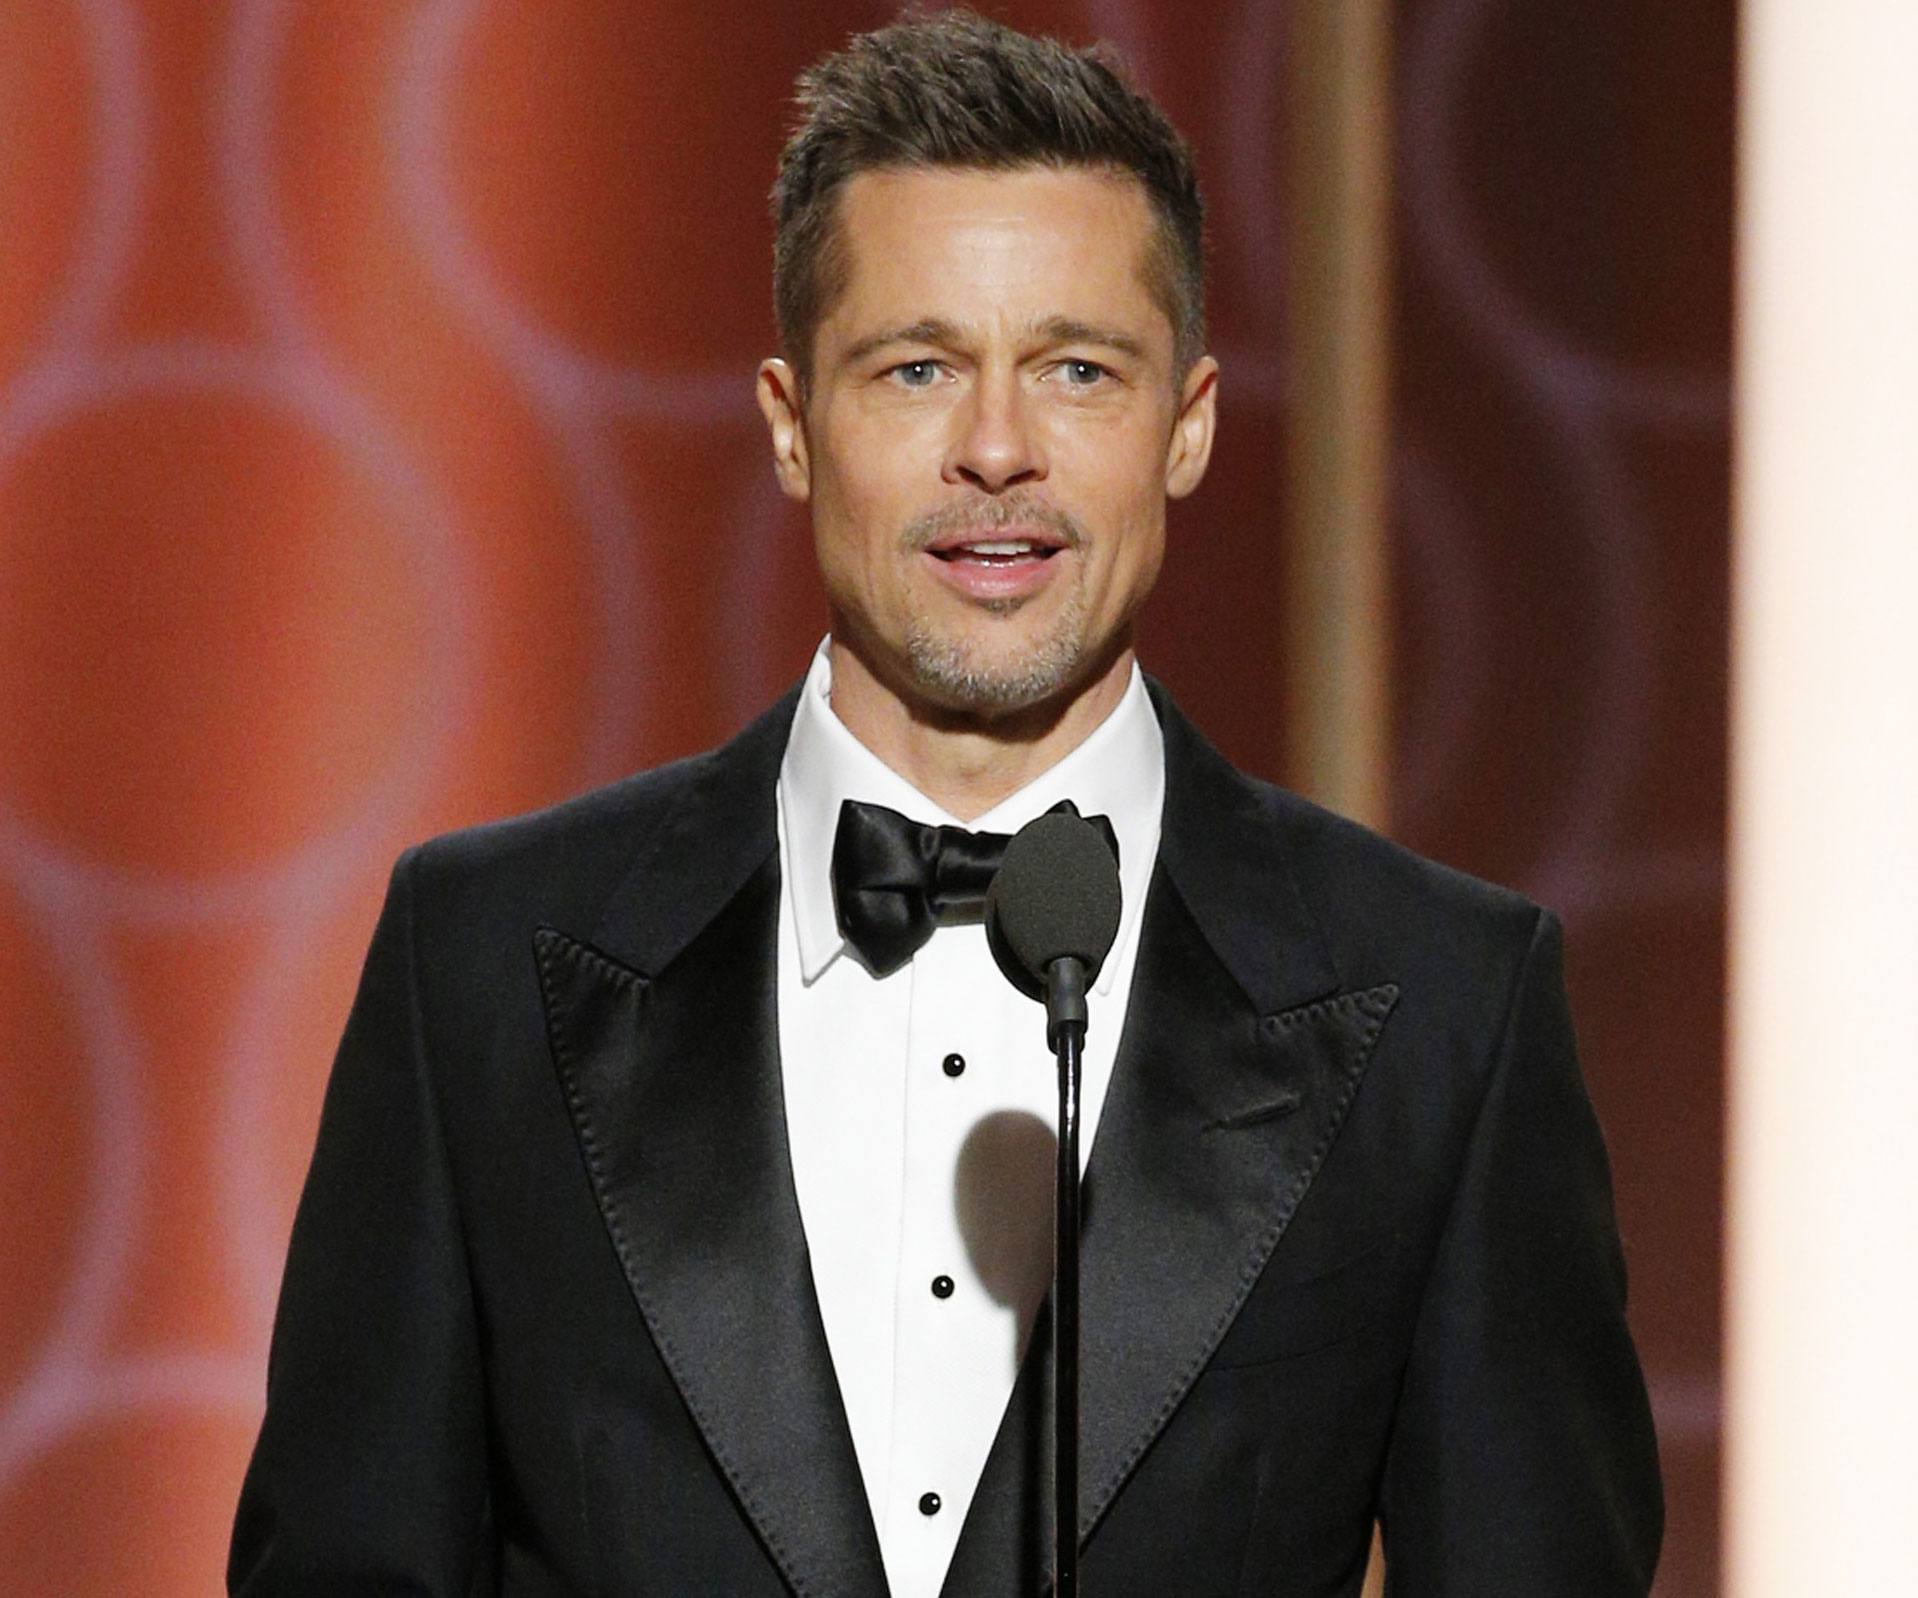 Brad Pitt's next movie may shock you